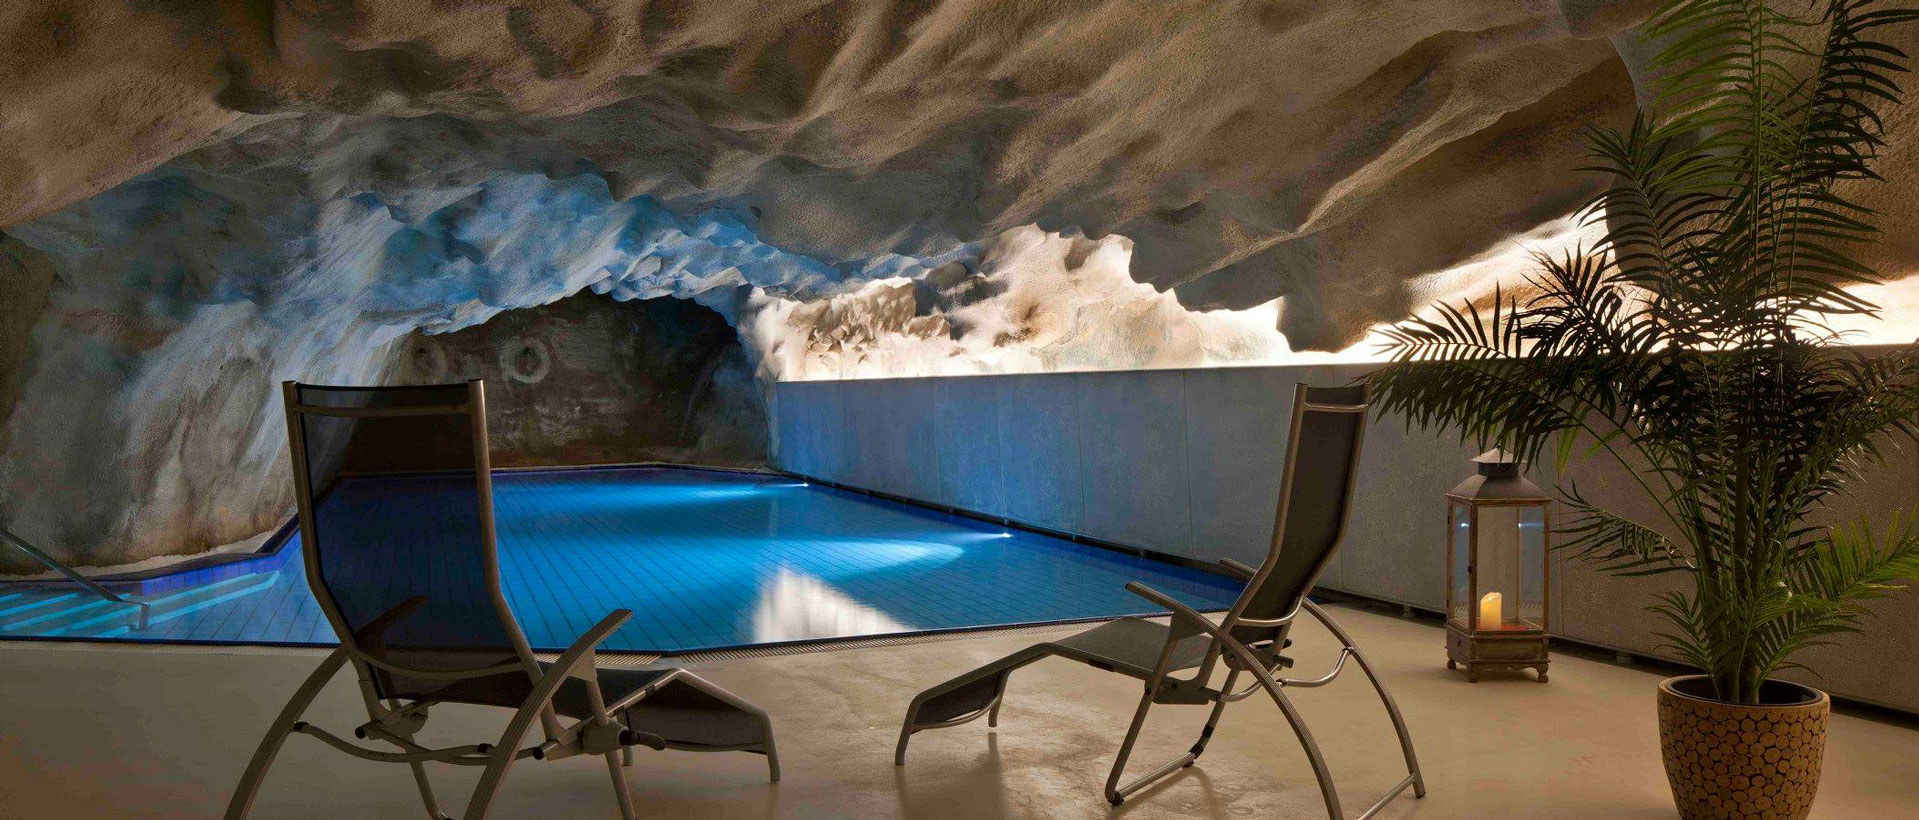 Hammam et grotte thermal